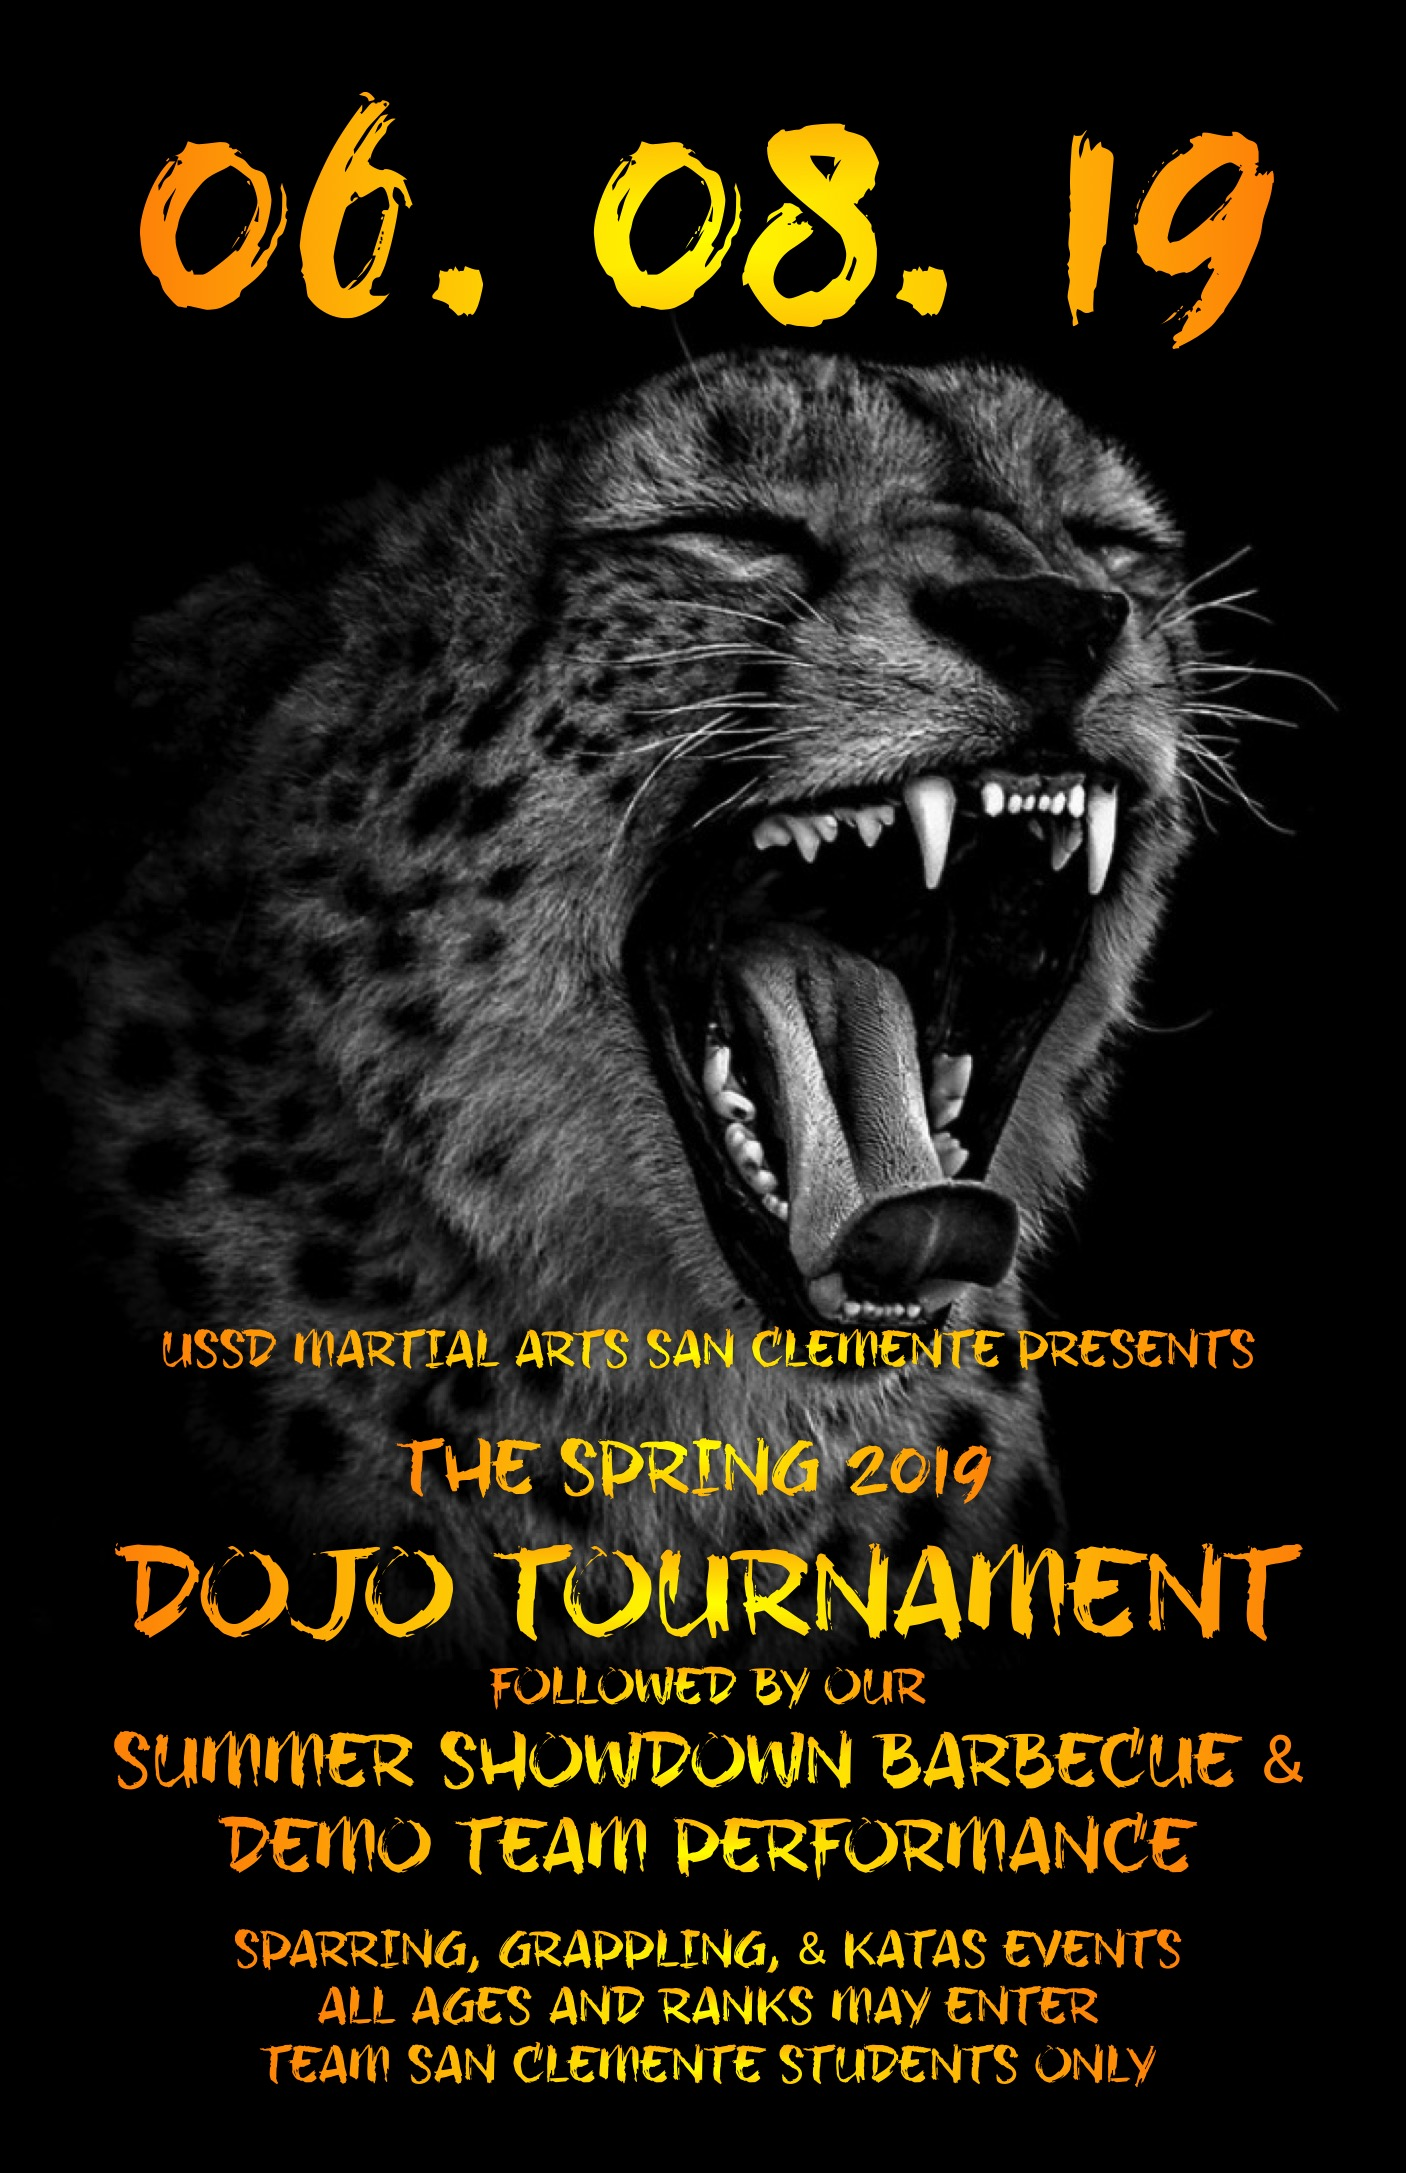 UPDATED*** Spring 2019 Dojo Tournament & Barbecue